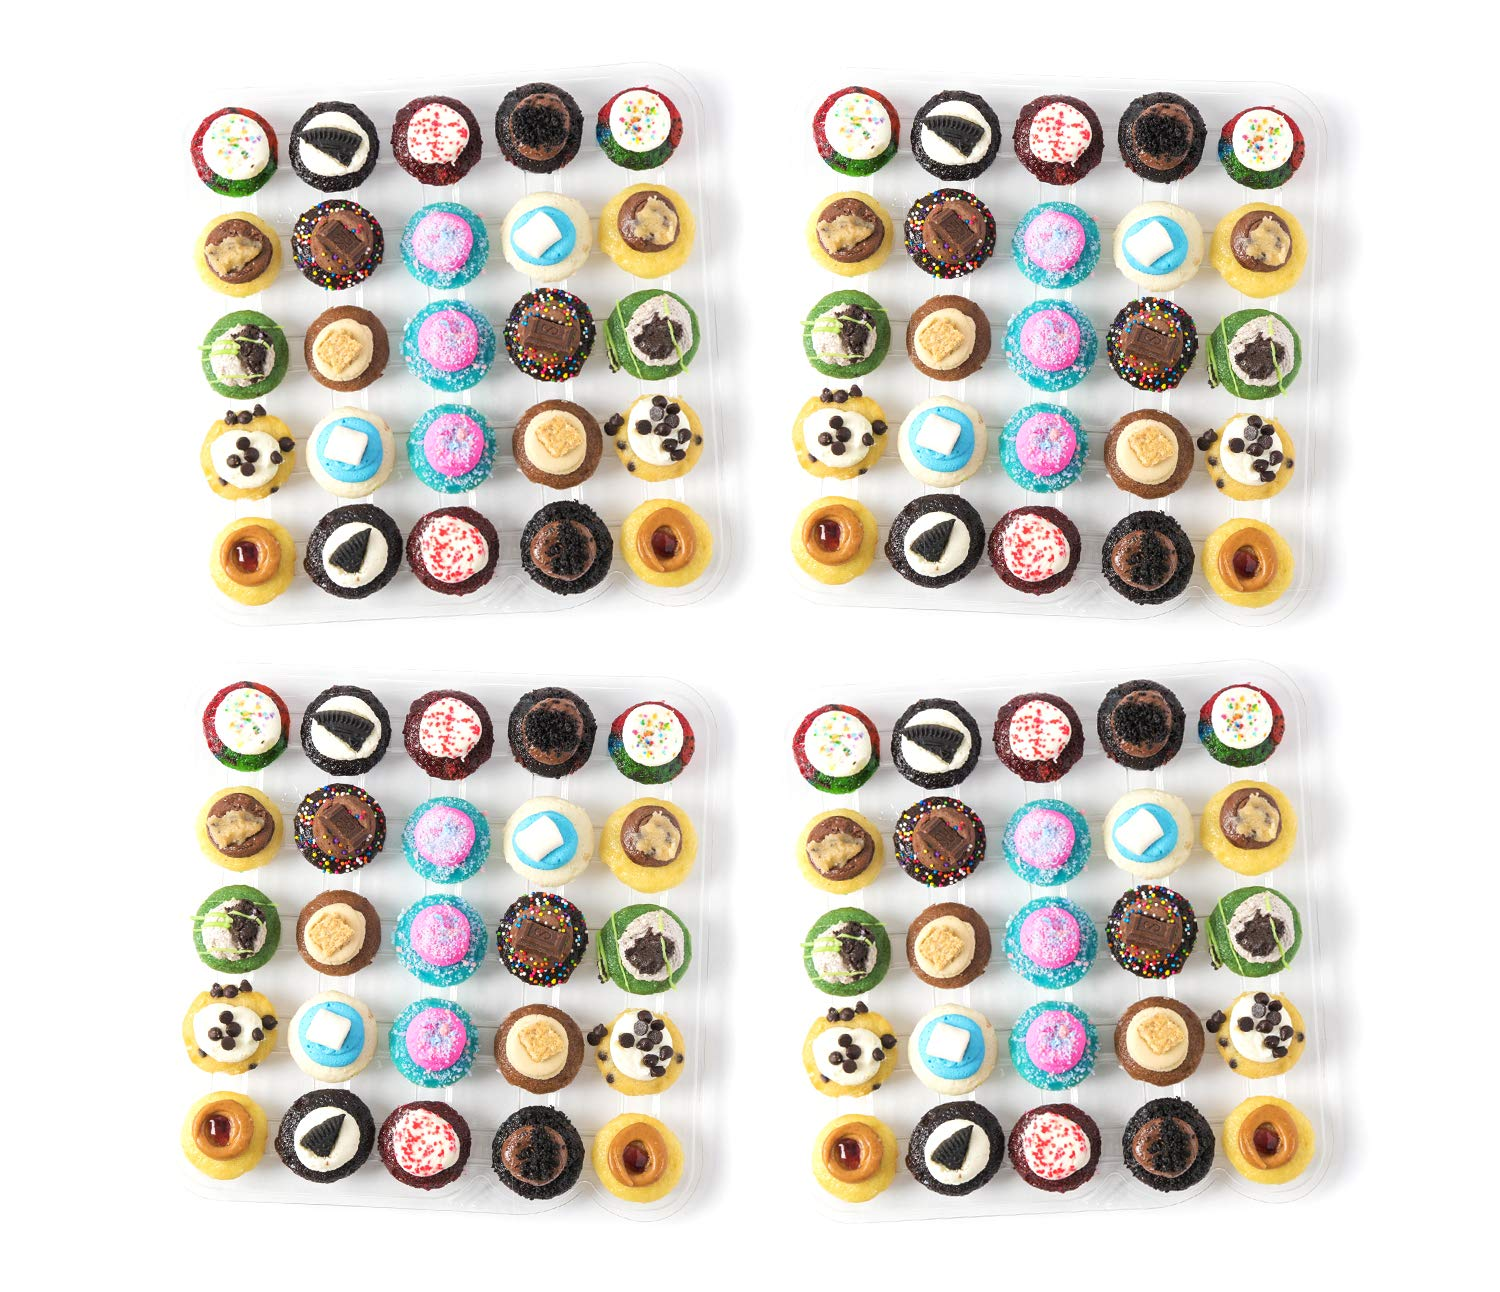 Baked by Melissa Cupcakes The Latest & Greatest - Assorted Bite-Size Cupcakes, 100 Count